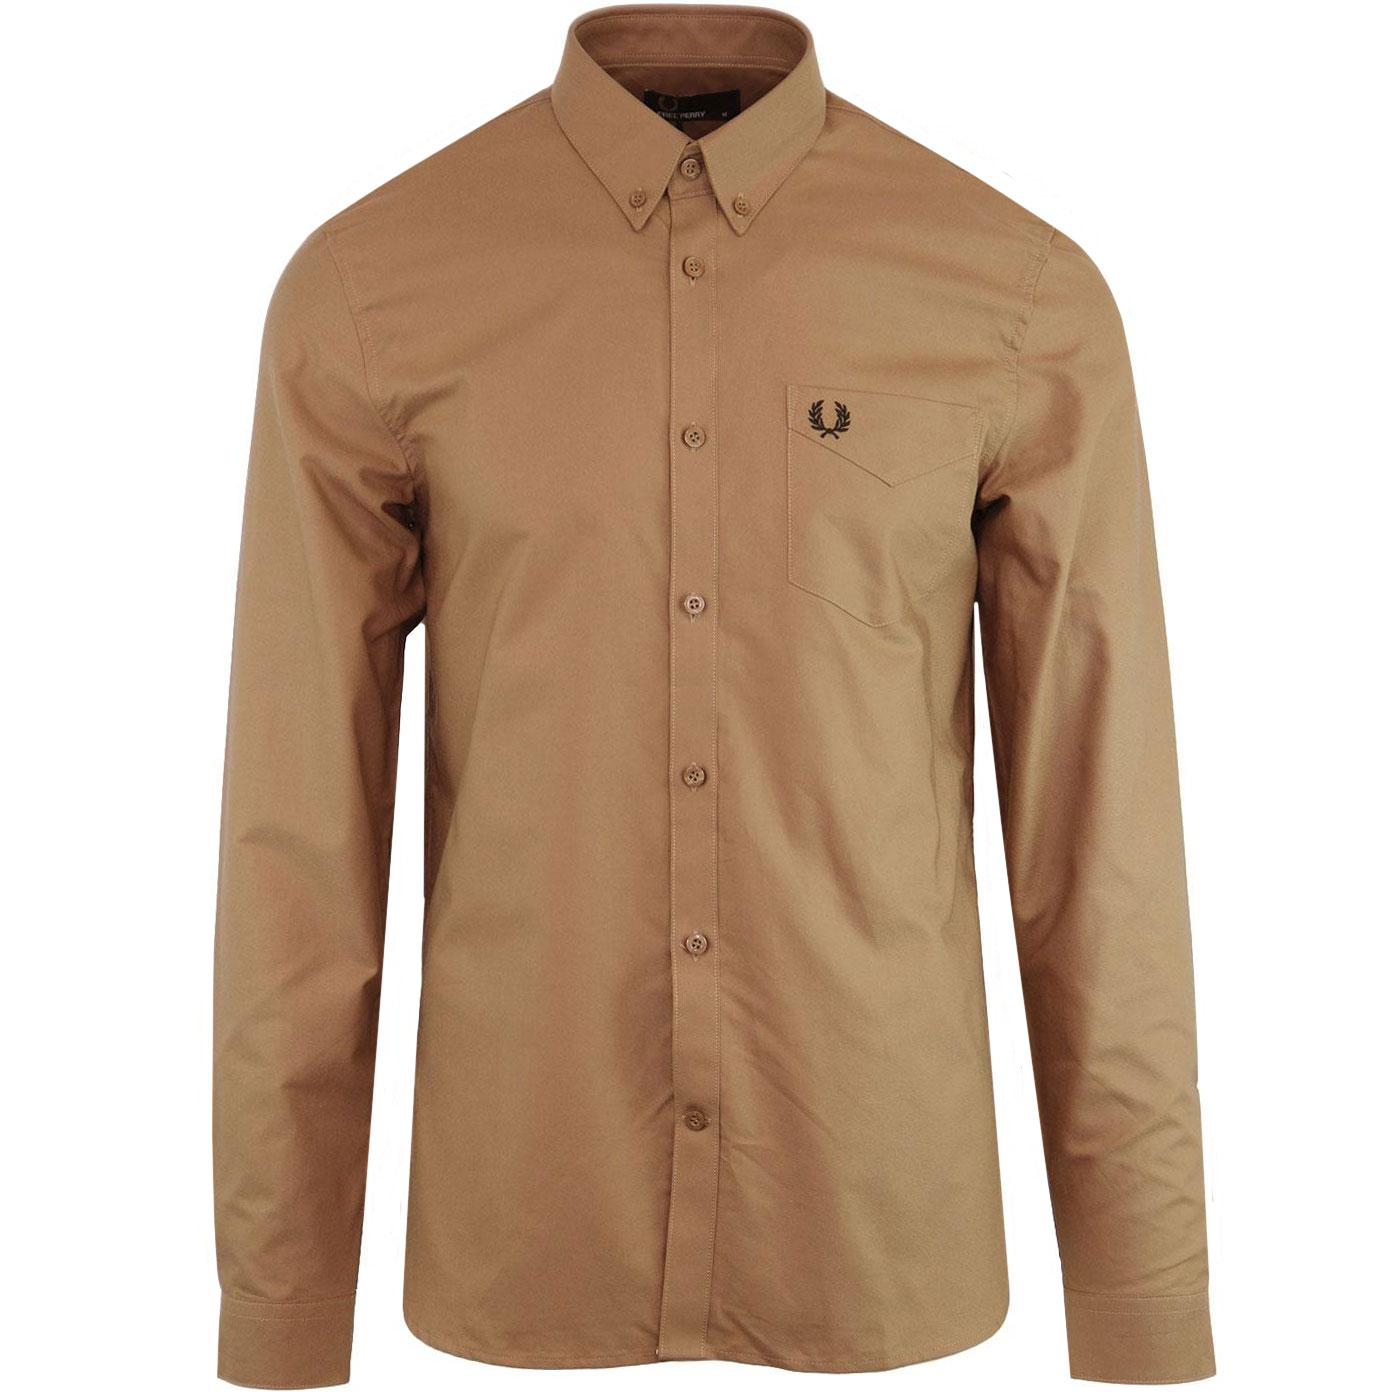 FRED PERRY Men's Classic Mod 60s Oxford Shirt (DC)